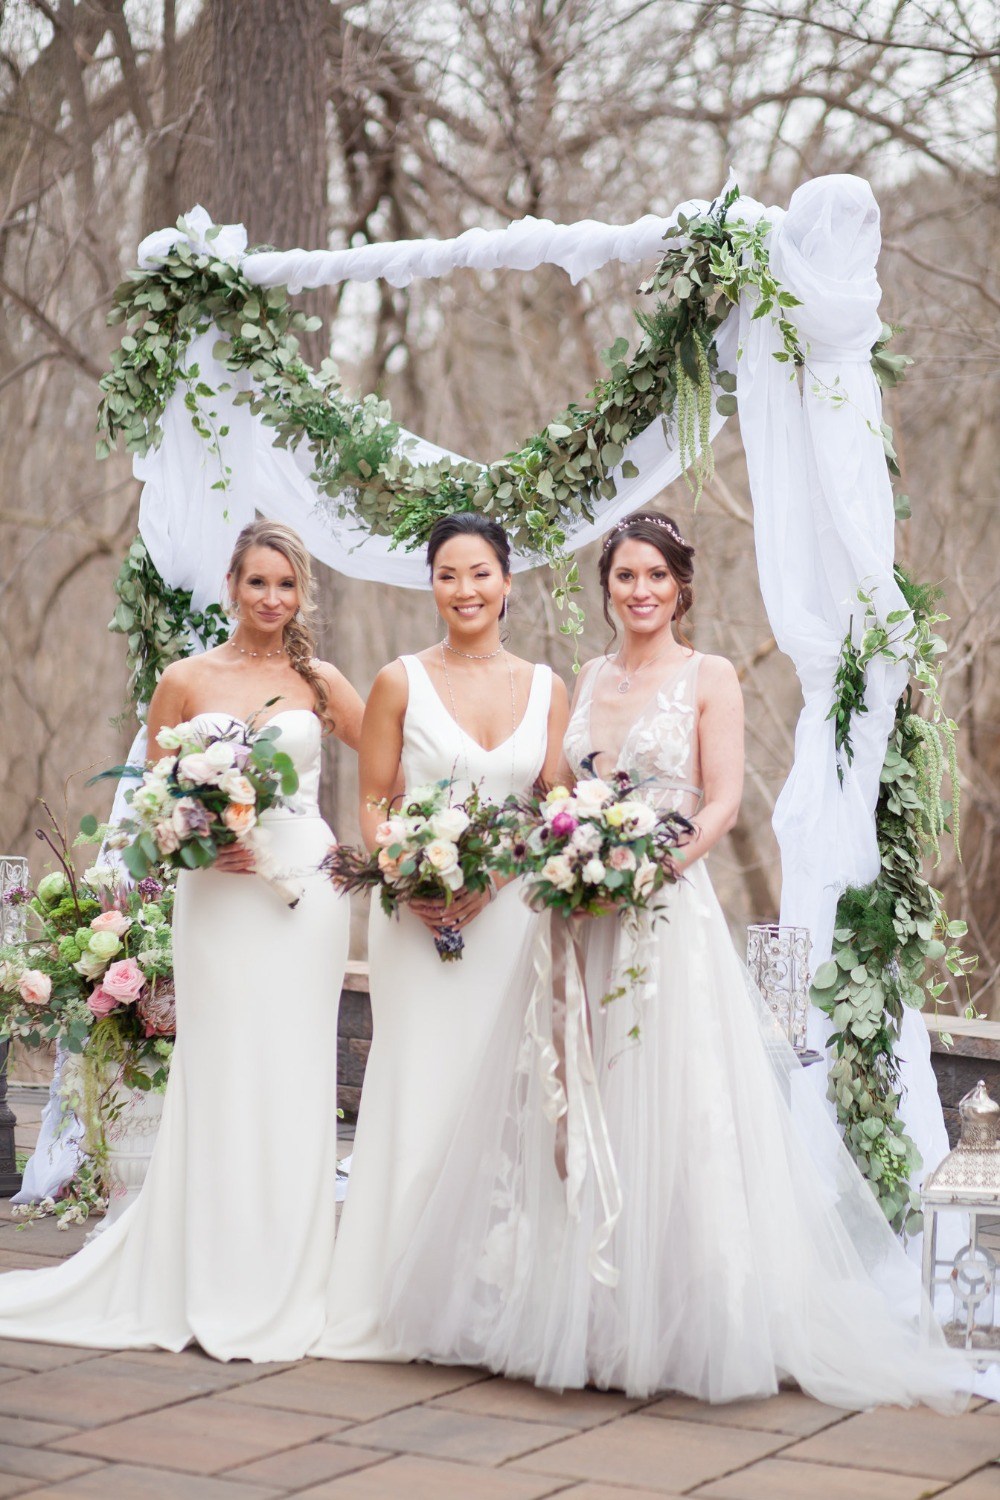 bride and bridesmaids in shades of white